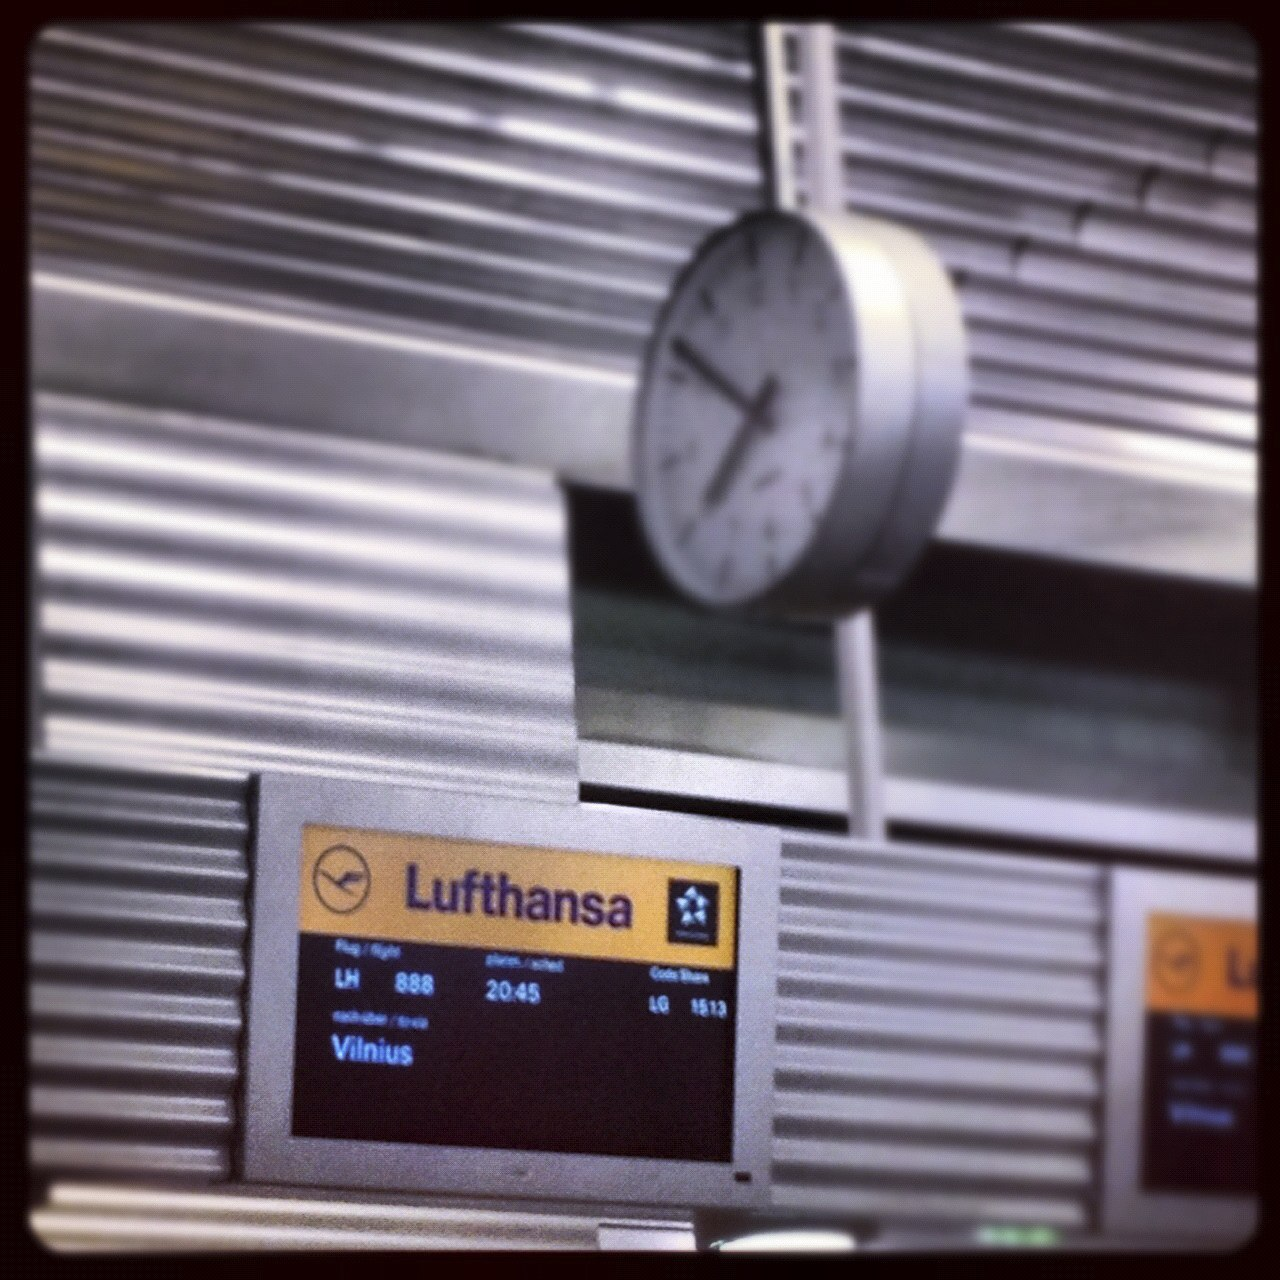 Airport to Lithuania